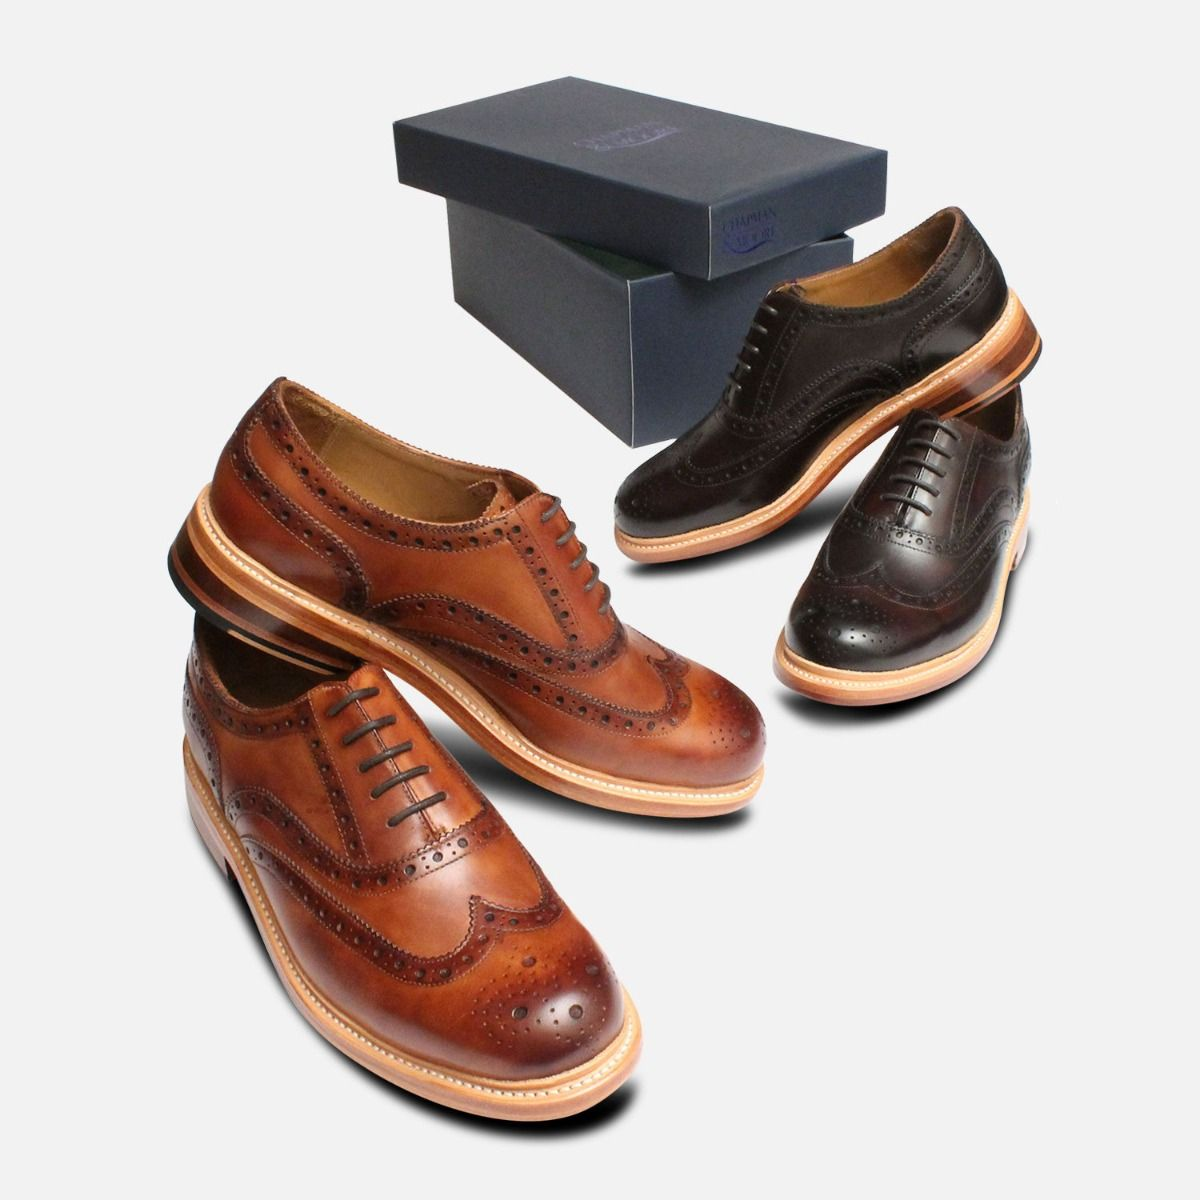 Luxury Chapman Oxford Brogues in Antique Tan